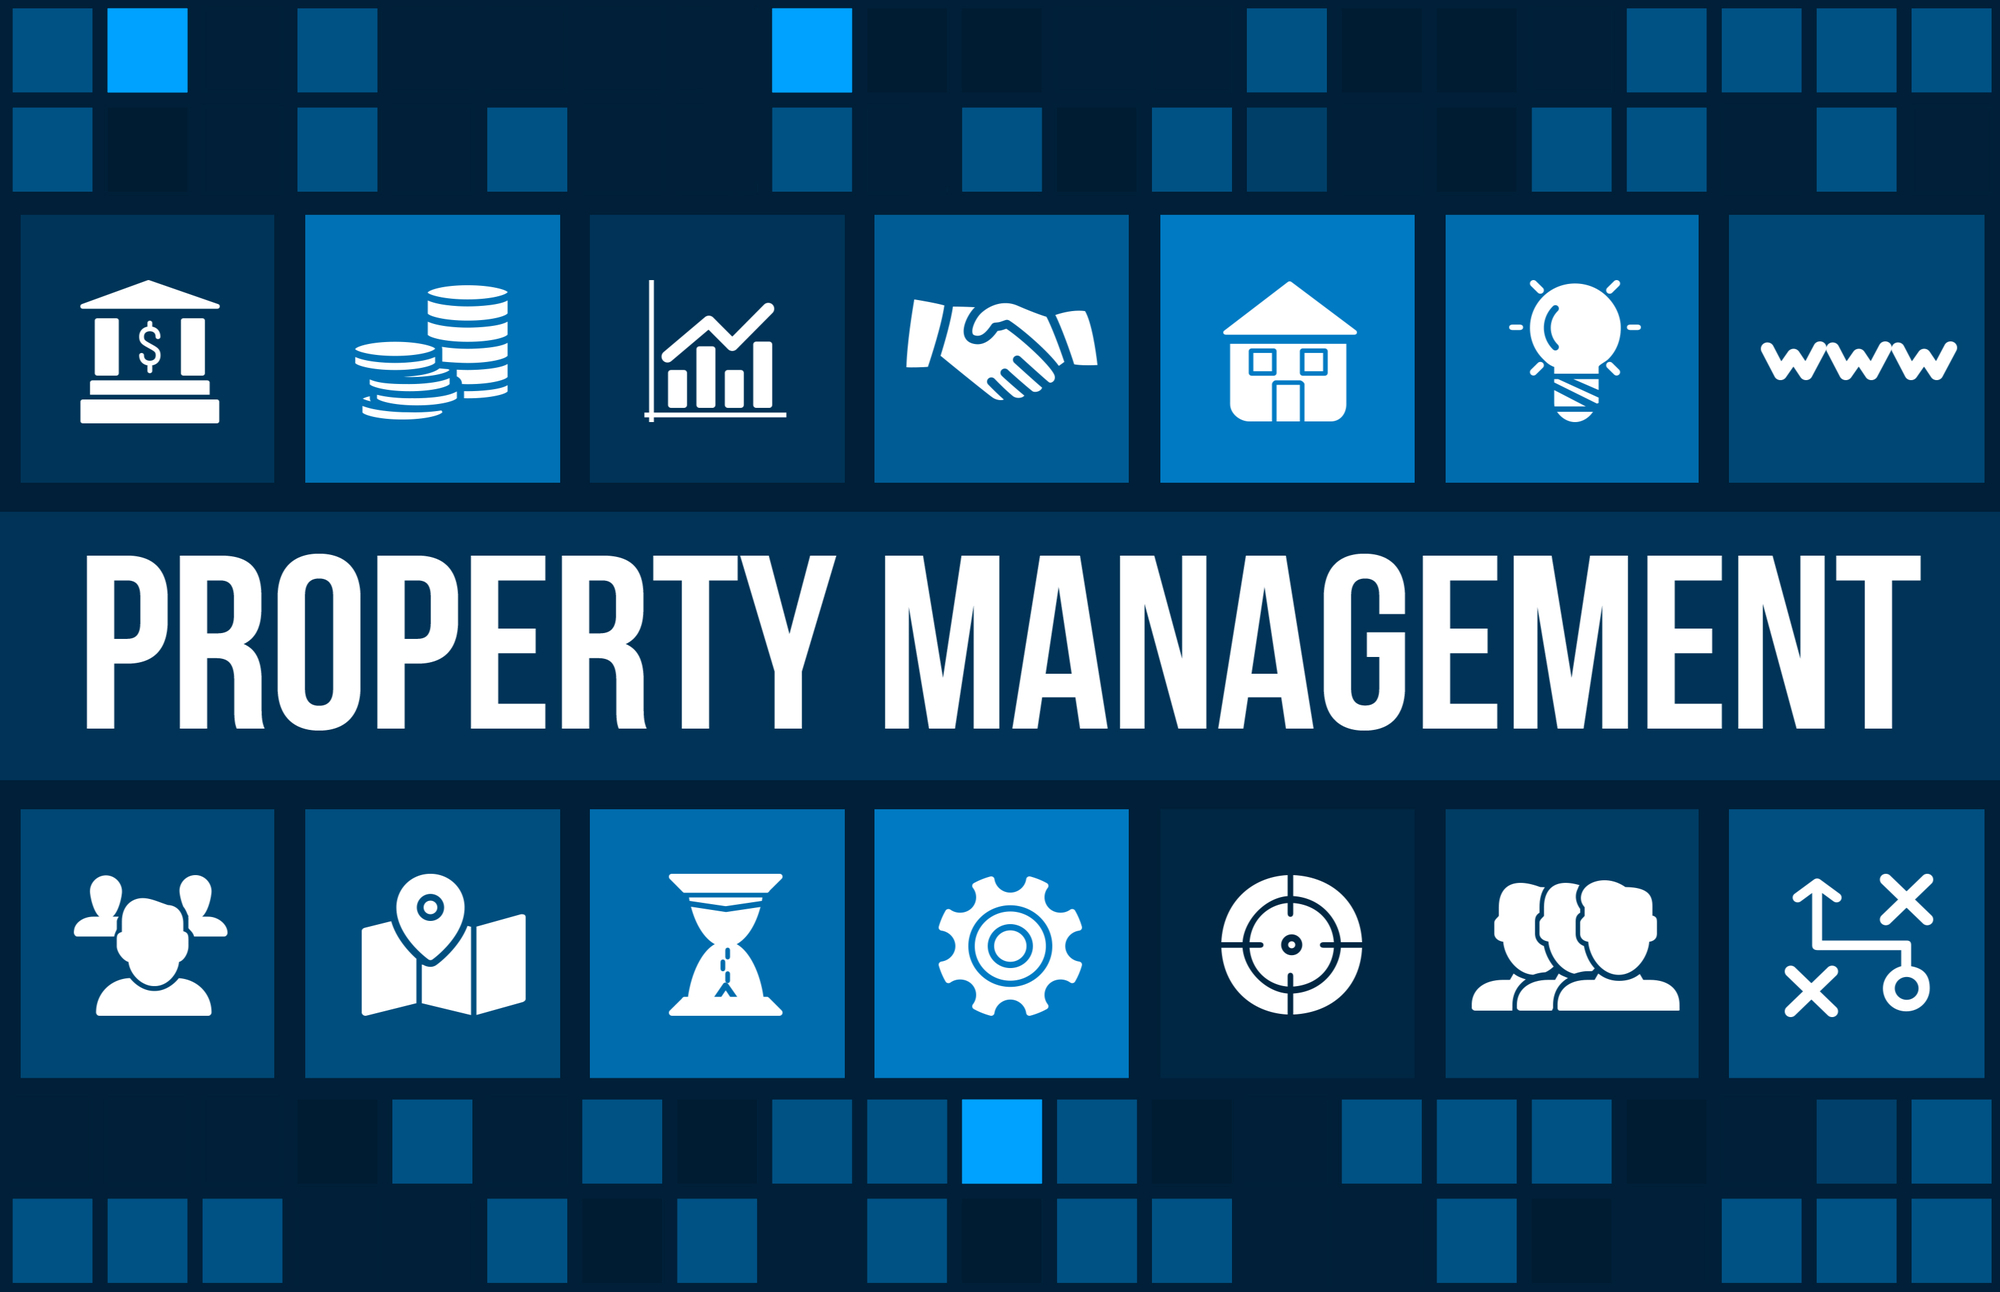 Property Management concept image with business icons and copyspace